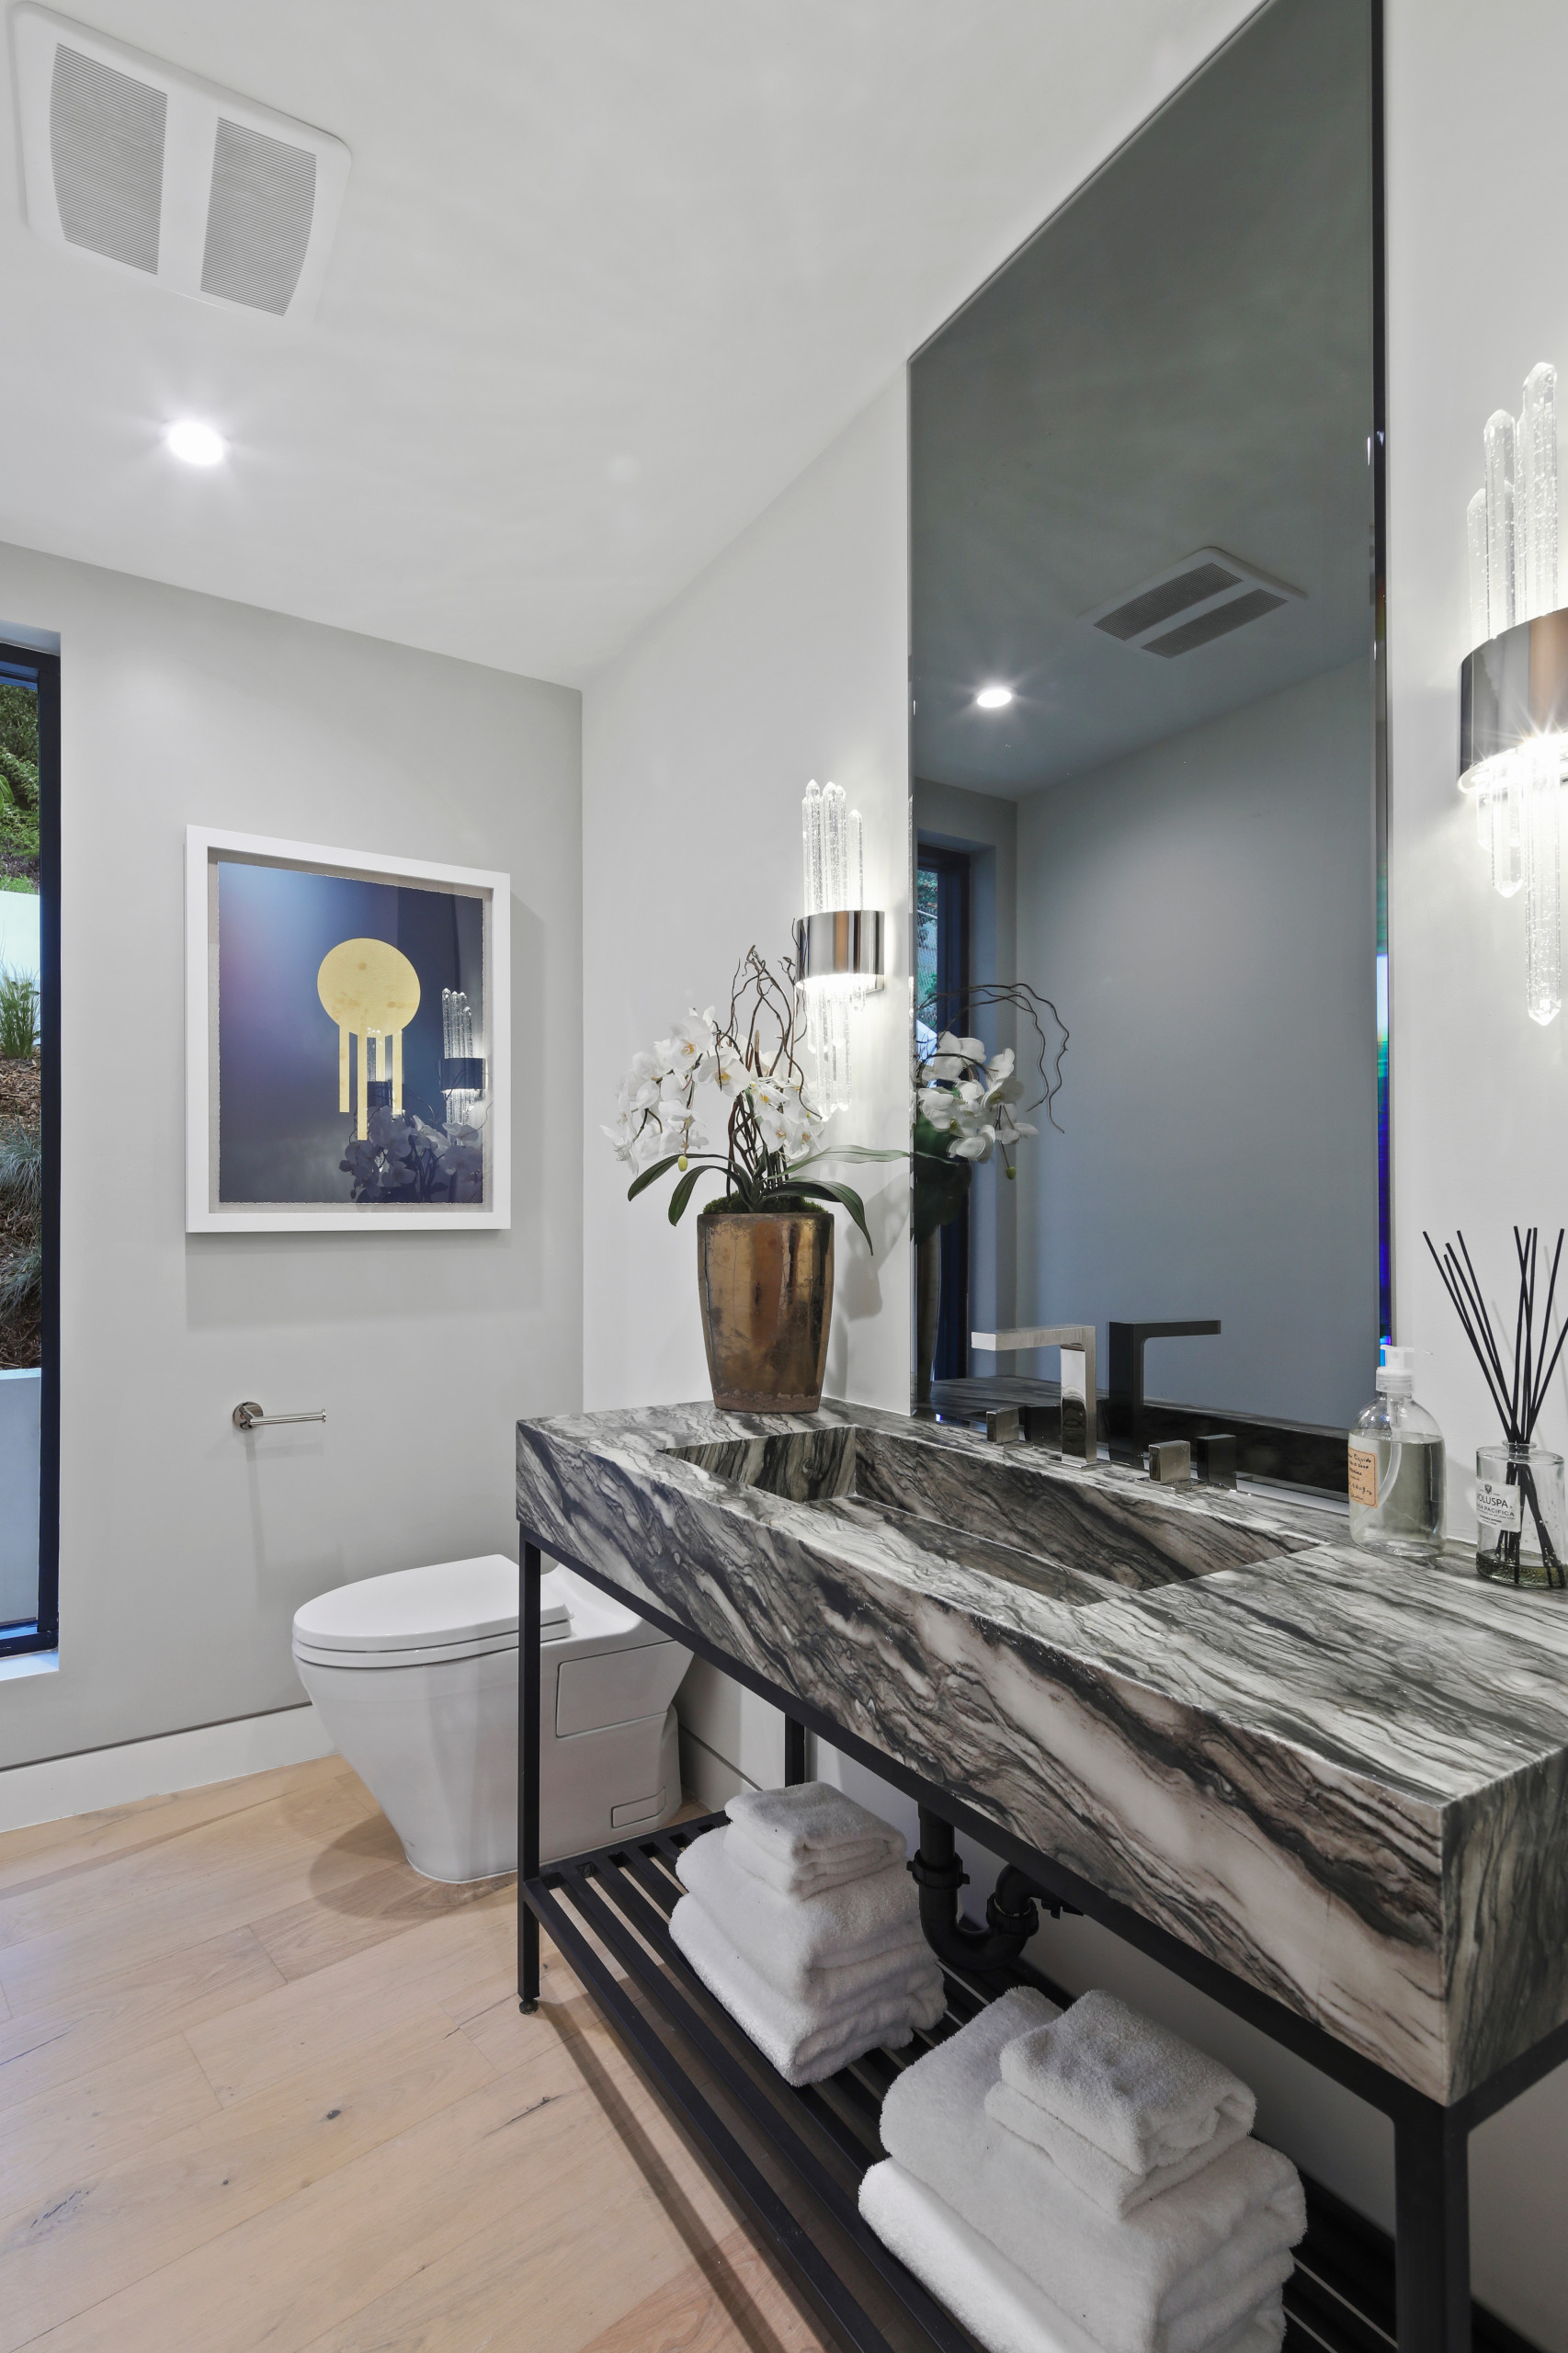 75 Beautiful Powder Room With Gray Walls Pictures Ideas February 2021 Houzz